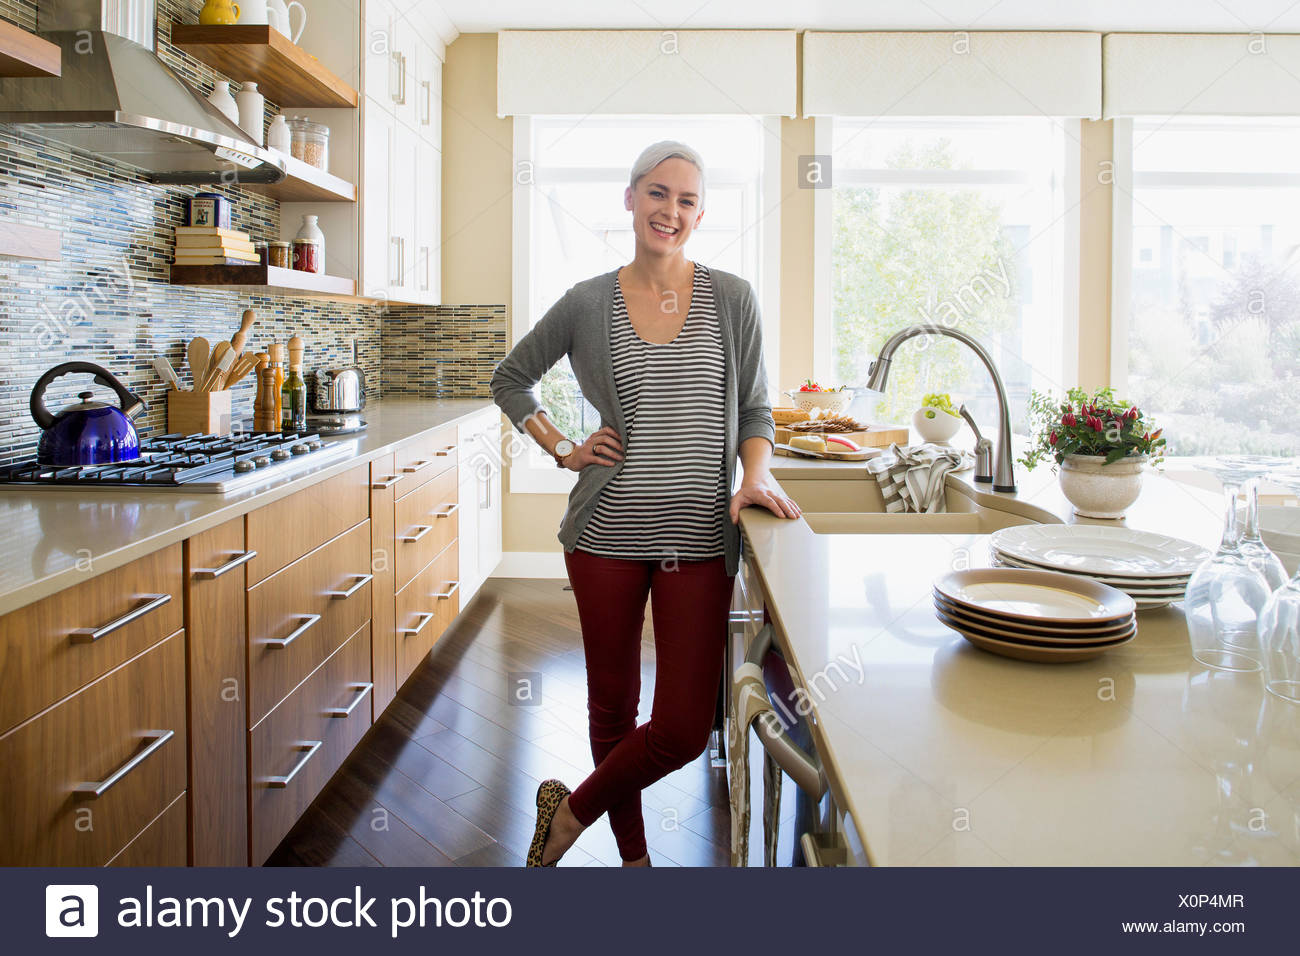 Portrait of smiling woman in kitchen Photo Stock